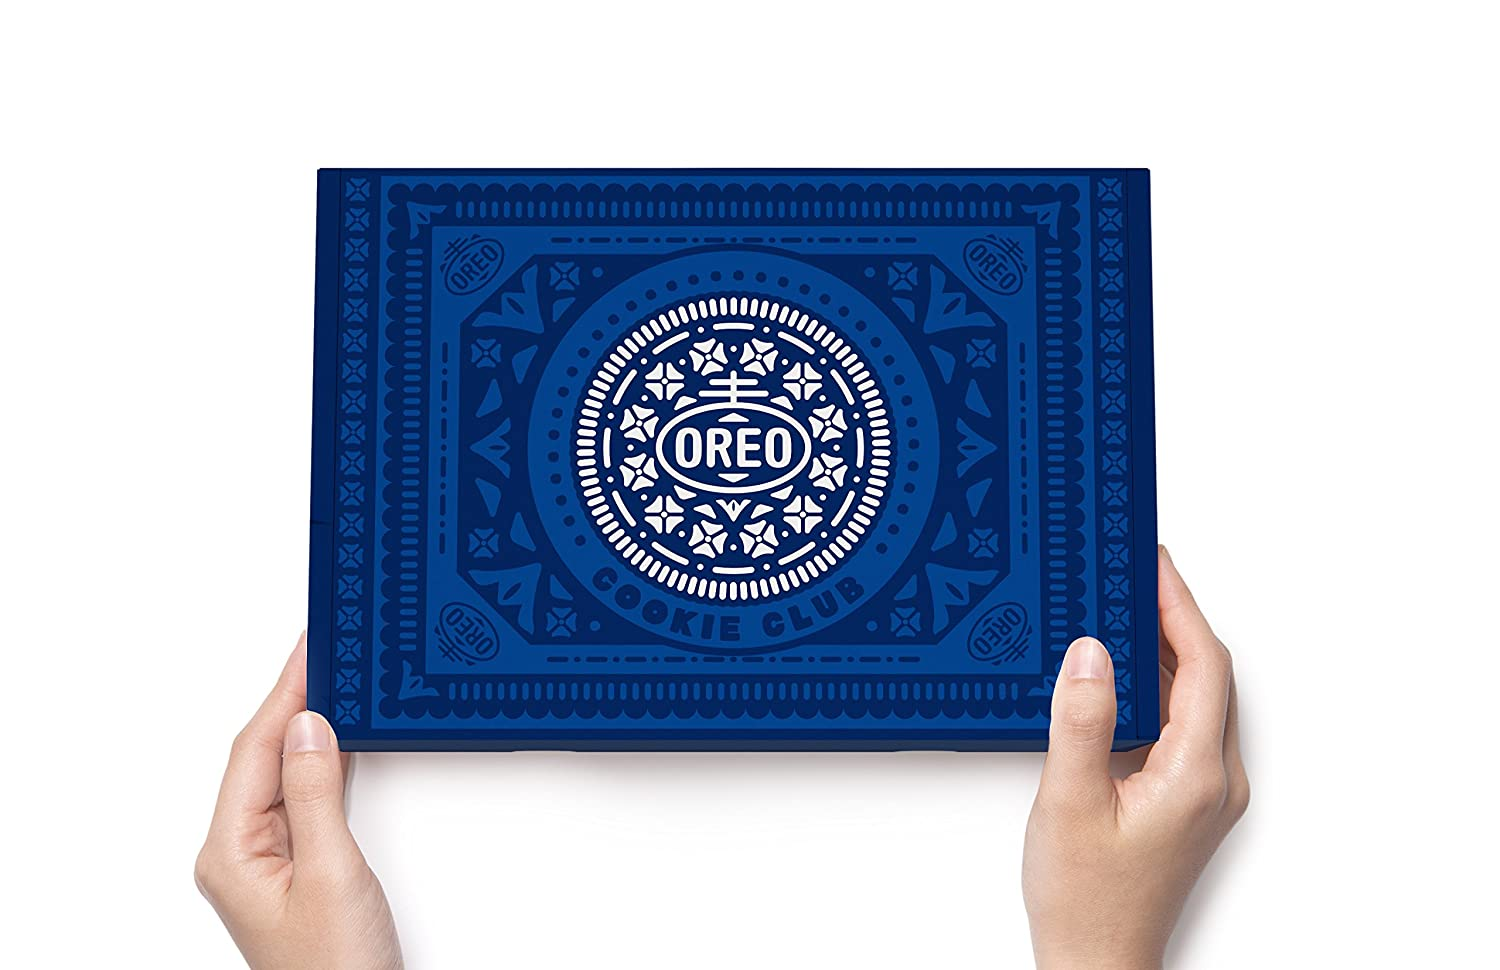 Oreo Cookie Club Subscription Box Oreo Of The Month Gift 3 Month Subscription